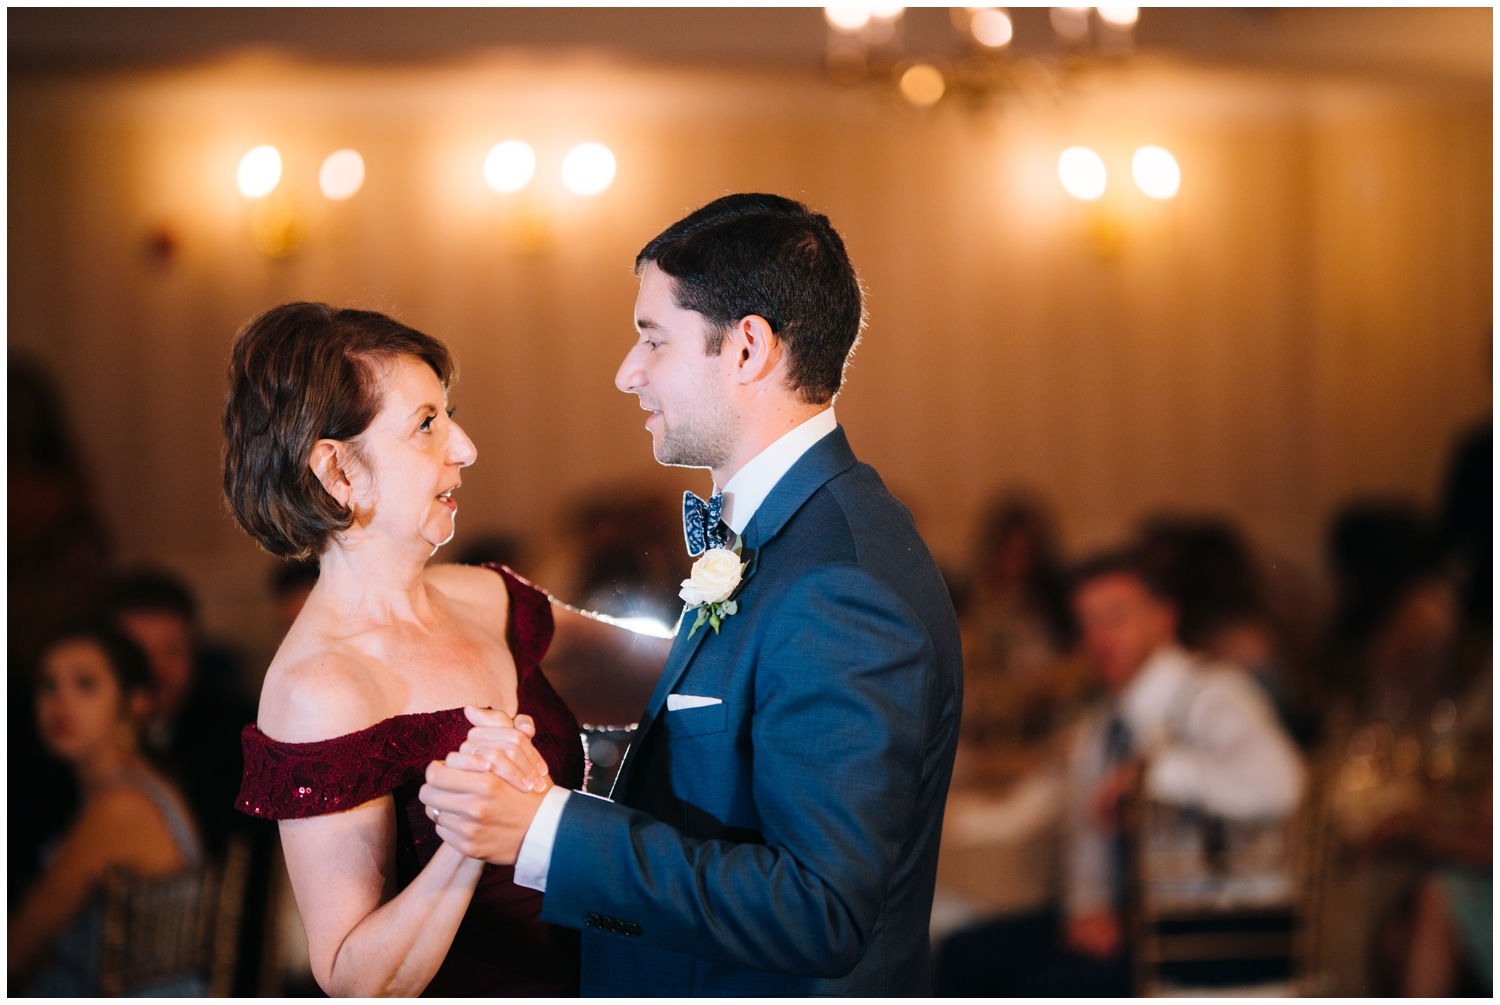 Madison Beach Hotel Wedding - Steven & Jessica_0210.jpg